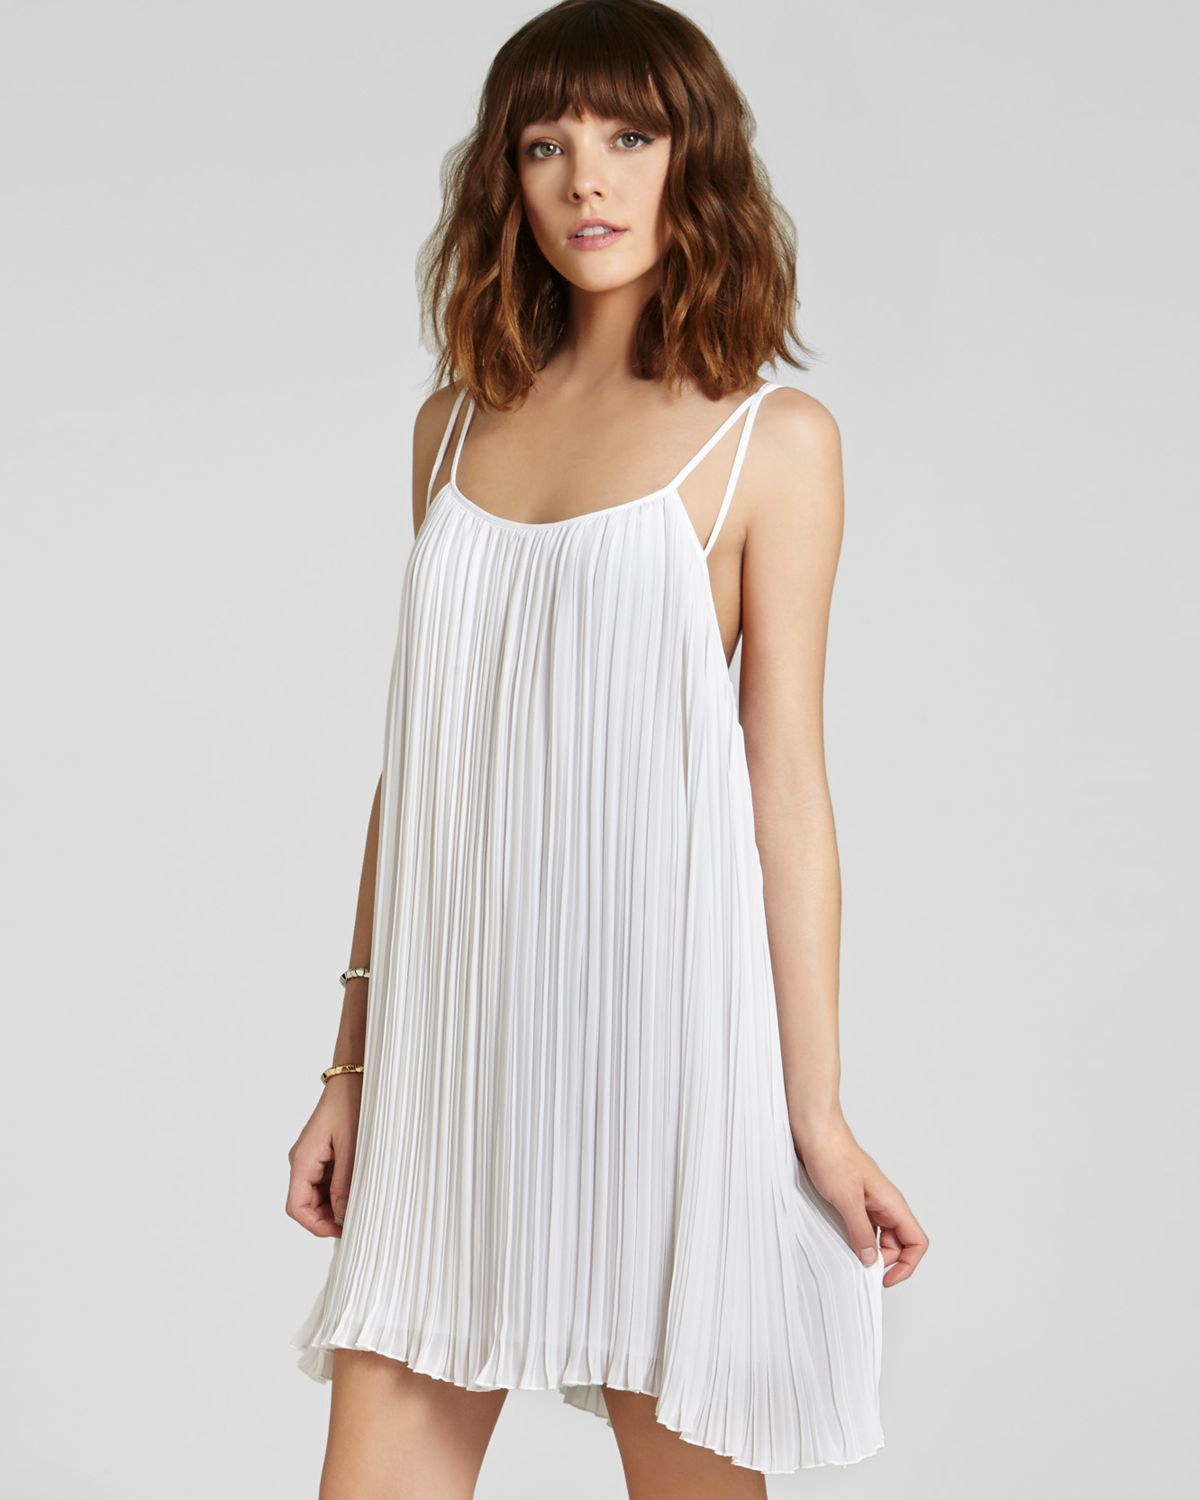 cd47ecc4662c1 BCBGeneration Dress Strappy Pleated in White - Lyst